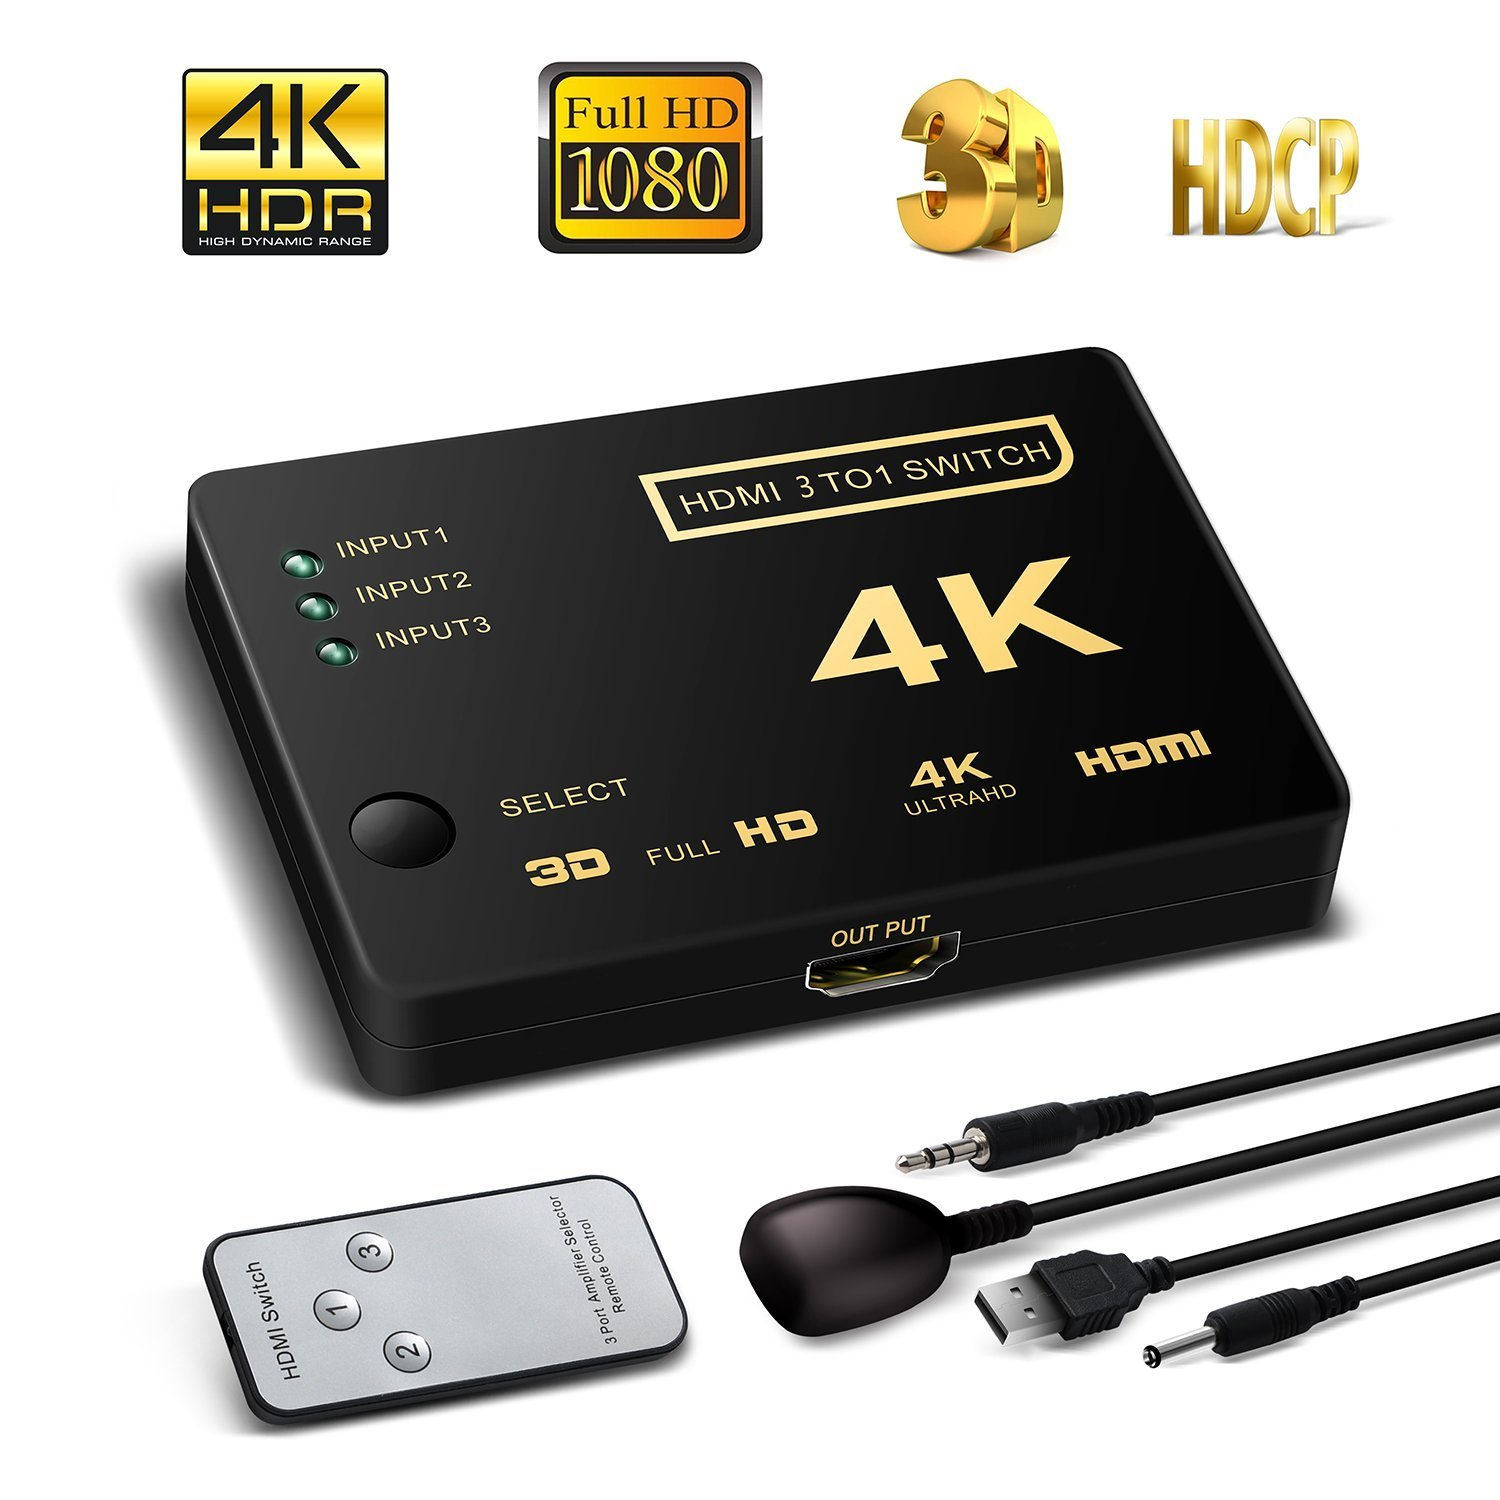 HDMI Switcher 3X1, 4K Support HDCP 1080p Mini 3 in 1 out HDMI Swicth HDMI Splitter Intelligent 4 Port 4K HDMI Audio Switcher Selector Splitter Amplifier Adapter with IR Remote for Mac PCs XBOX TVs by lunbowon